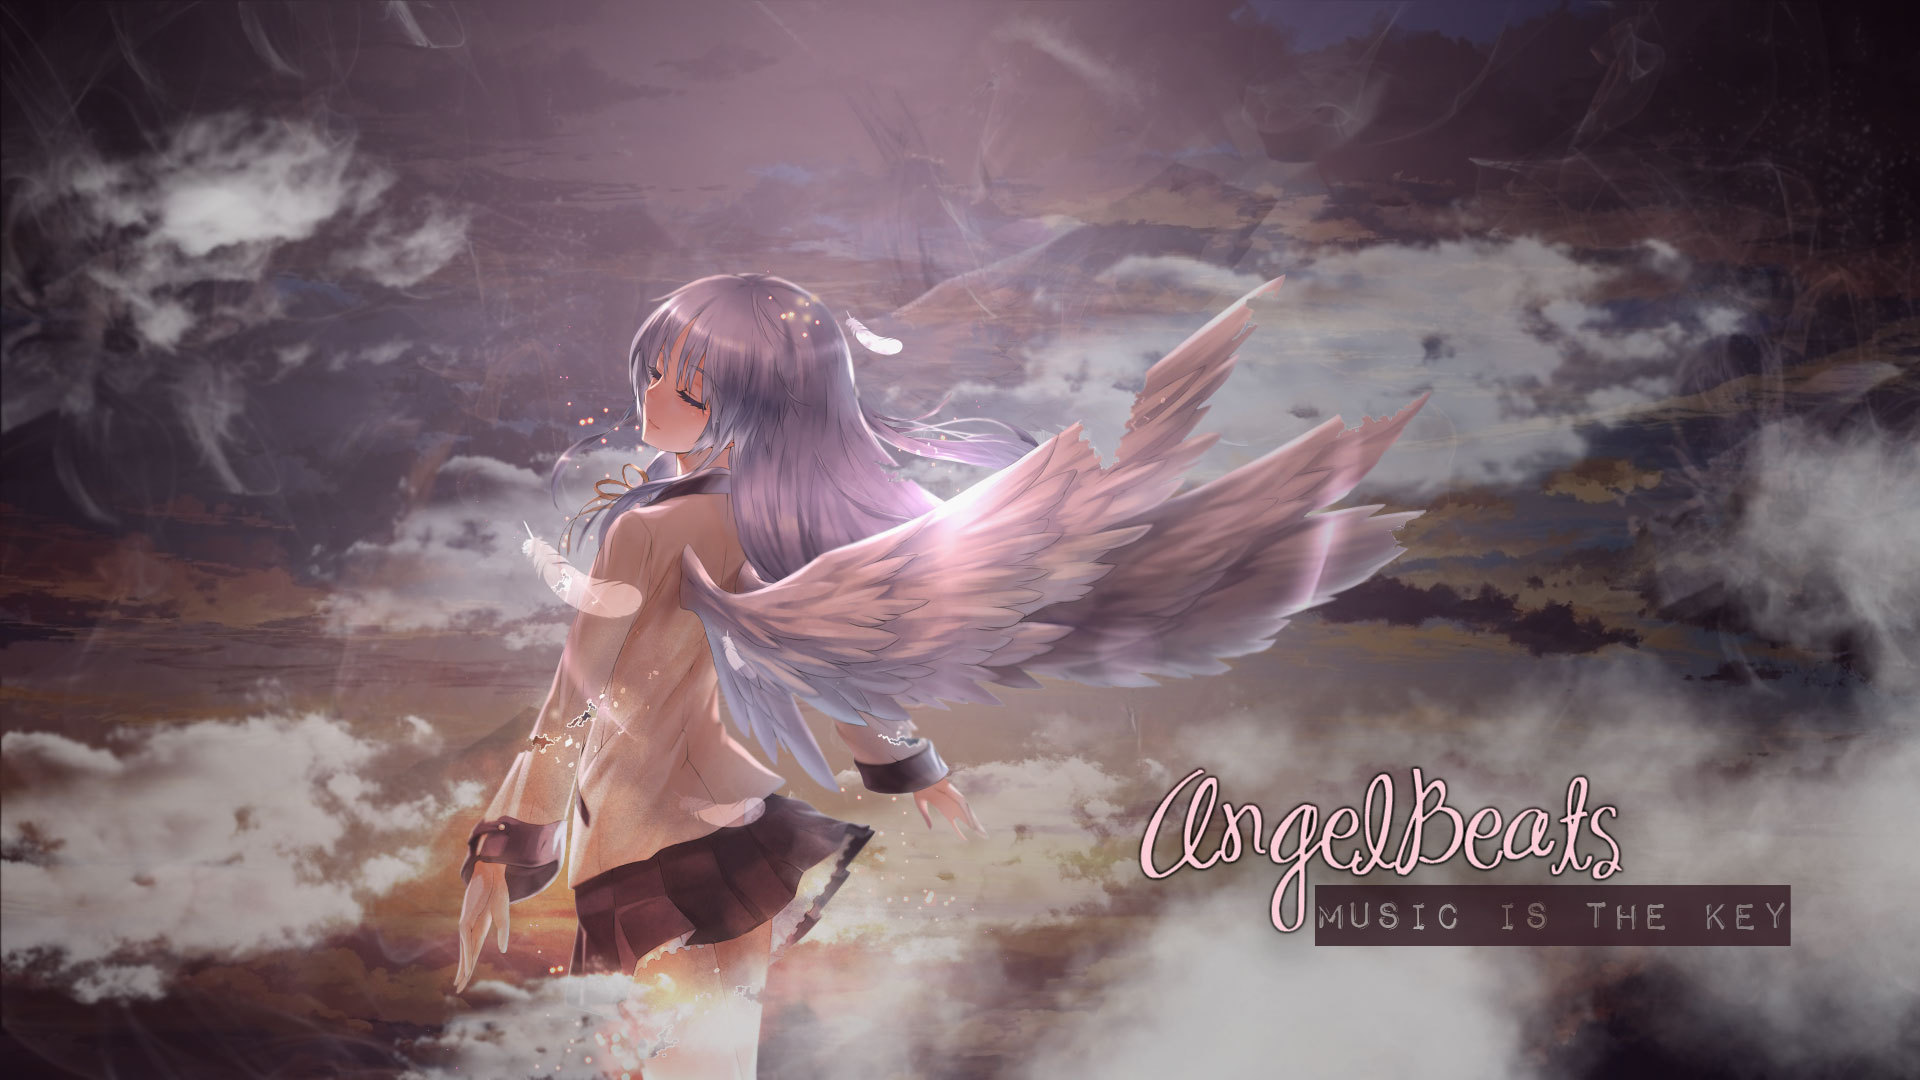 agelbeats-wallpaper1wpc1g.jpg